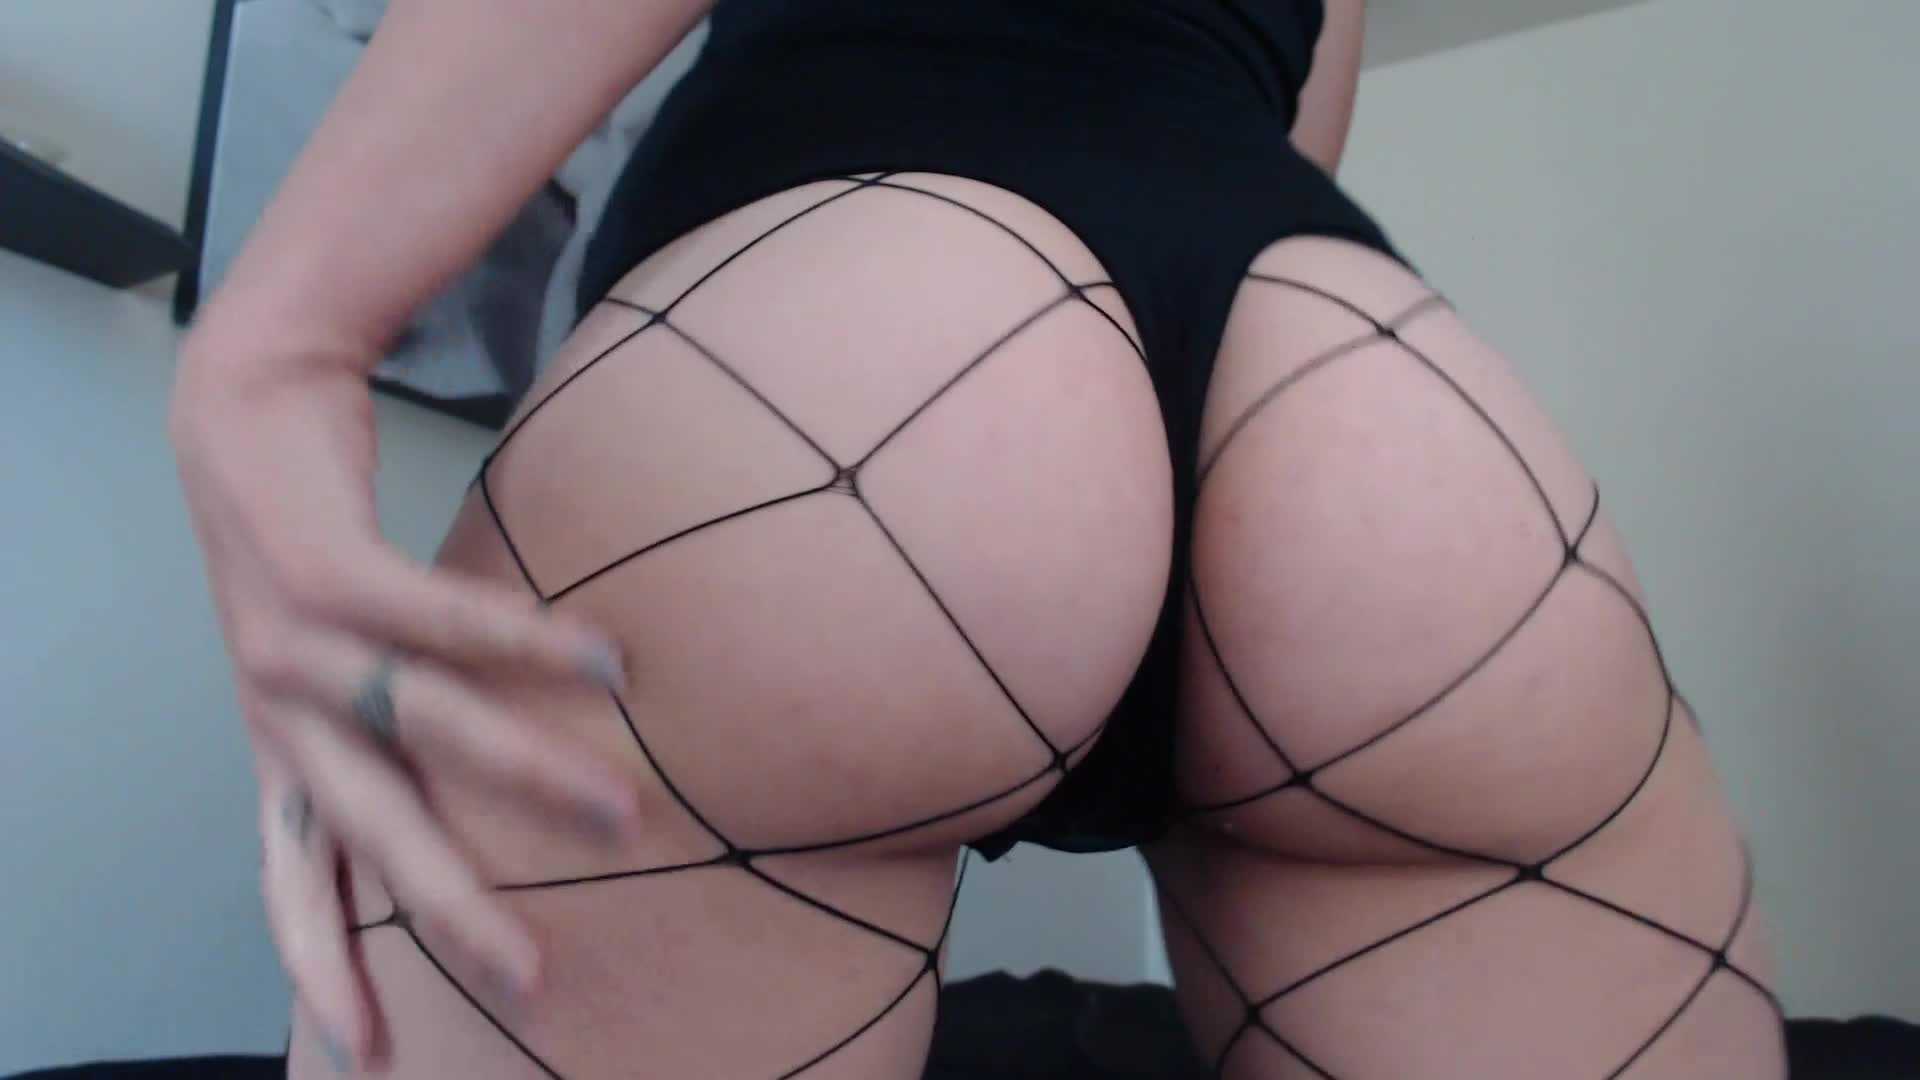 """Stella_Von_Savage"" (Ass, Ass Worship, Booty Shaking, Twerk, White Booty) Ass Shaking Twerk in Fishnets and Thong - ManyVids Production"